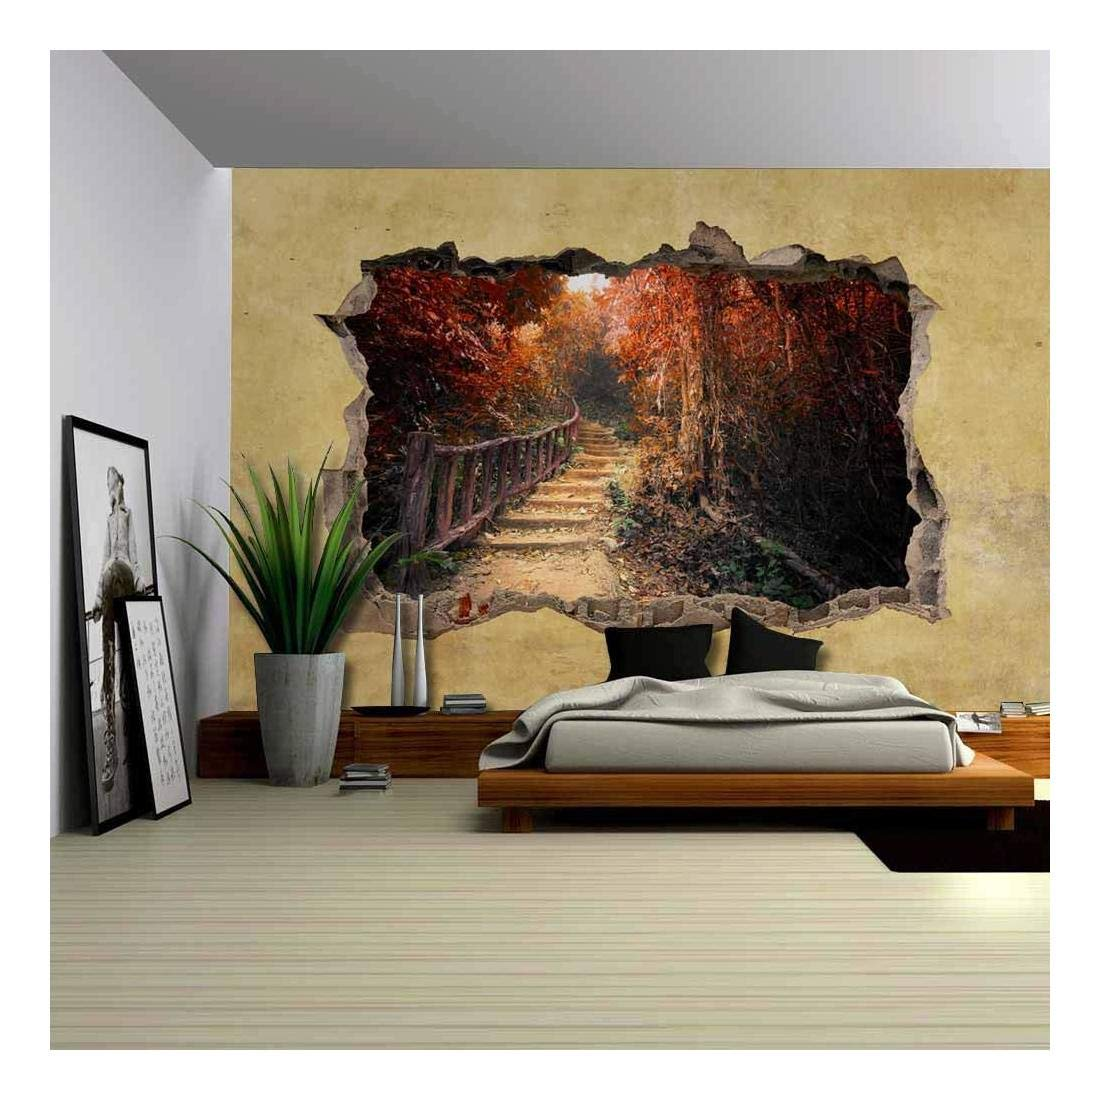 wall26 Beautiful Autumn View Viewed through a Broken Wall - Large Wall Mural, Removable Peel and Stick Wallpaper, Home Decor - 66x96 inches